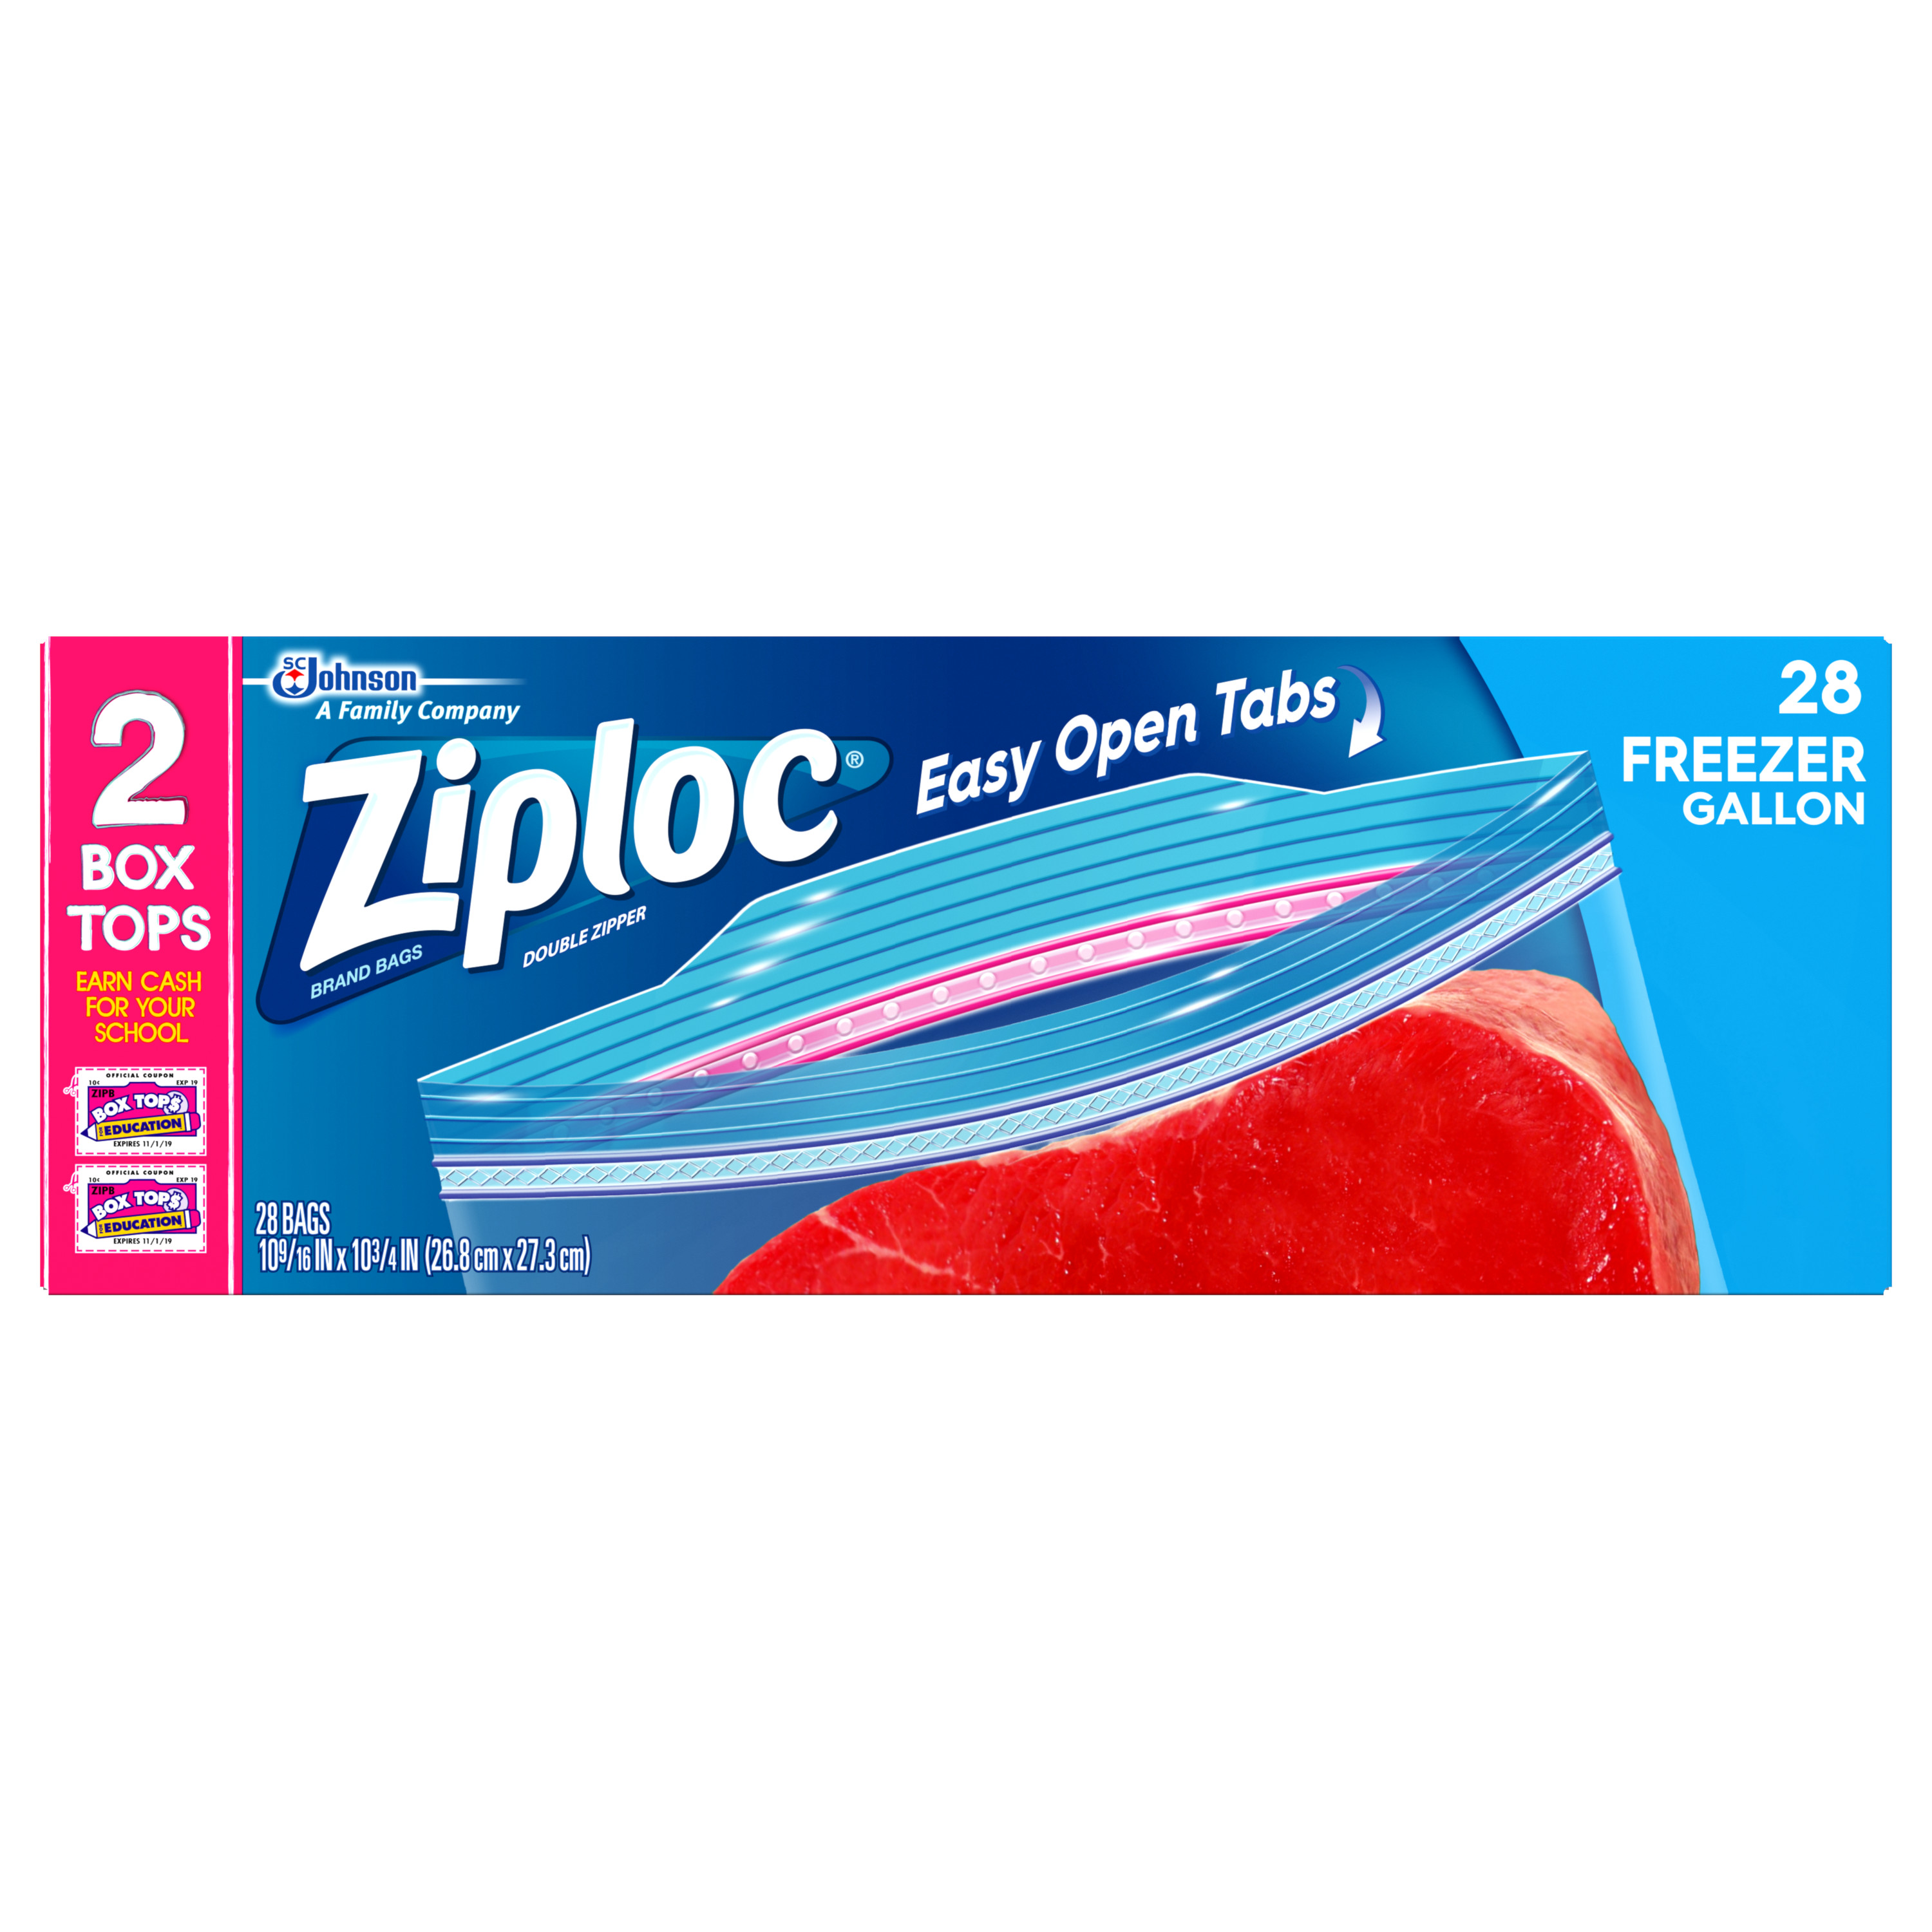 Ziploc Freezer Bags Gallon 28 count